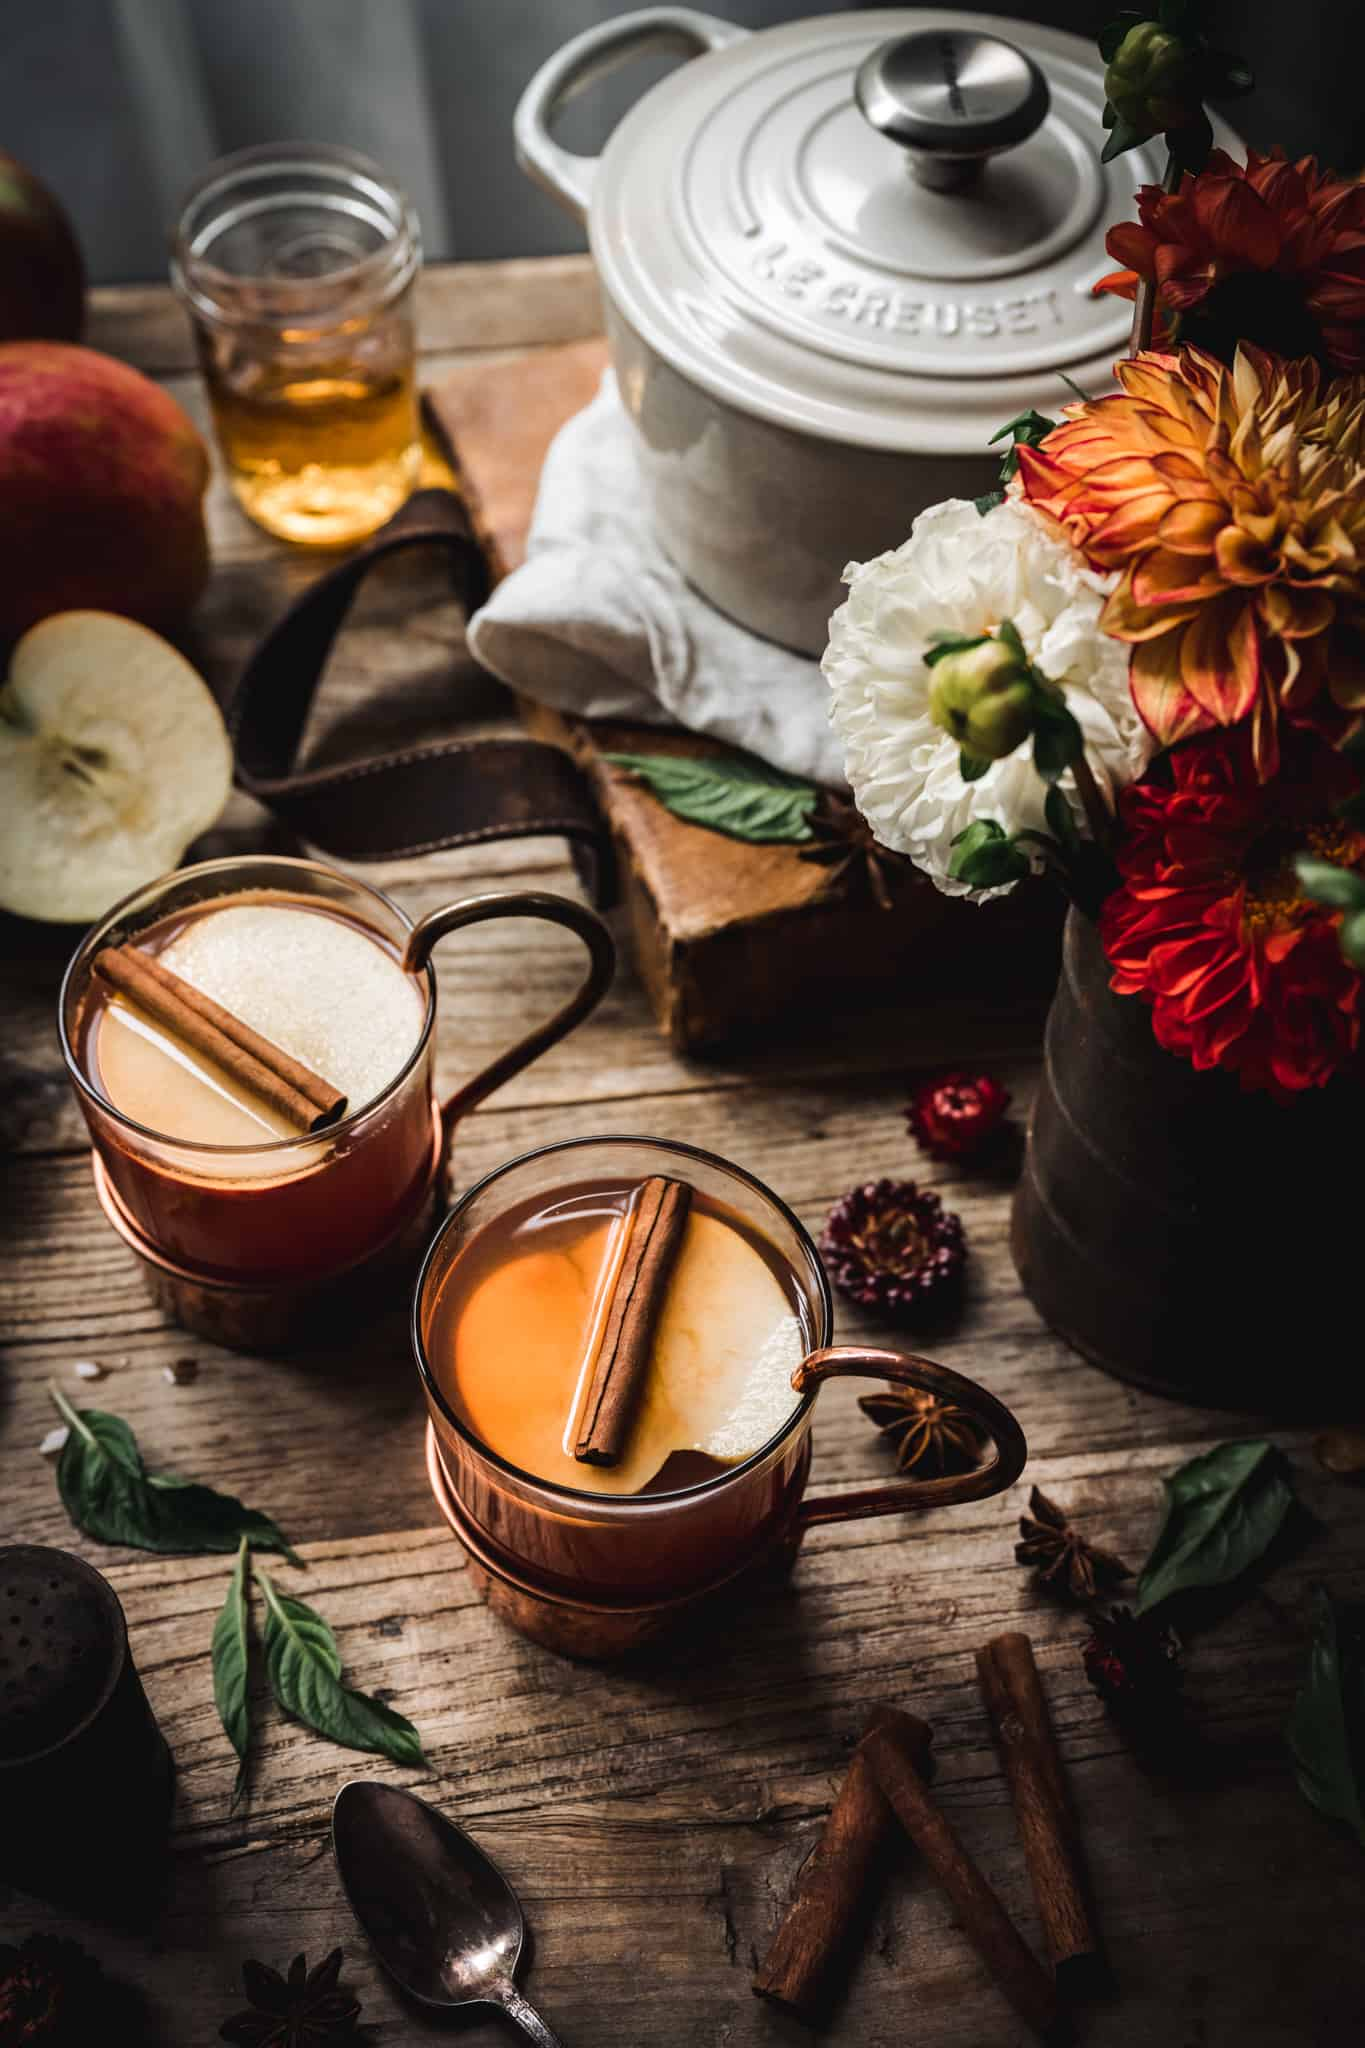 45 degree angle of hot apple cider brandy cocktail on wood backdrop